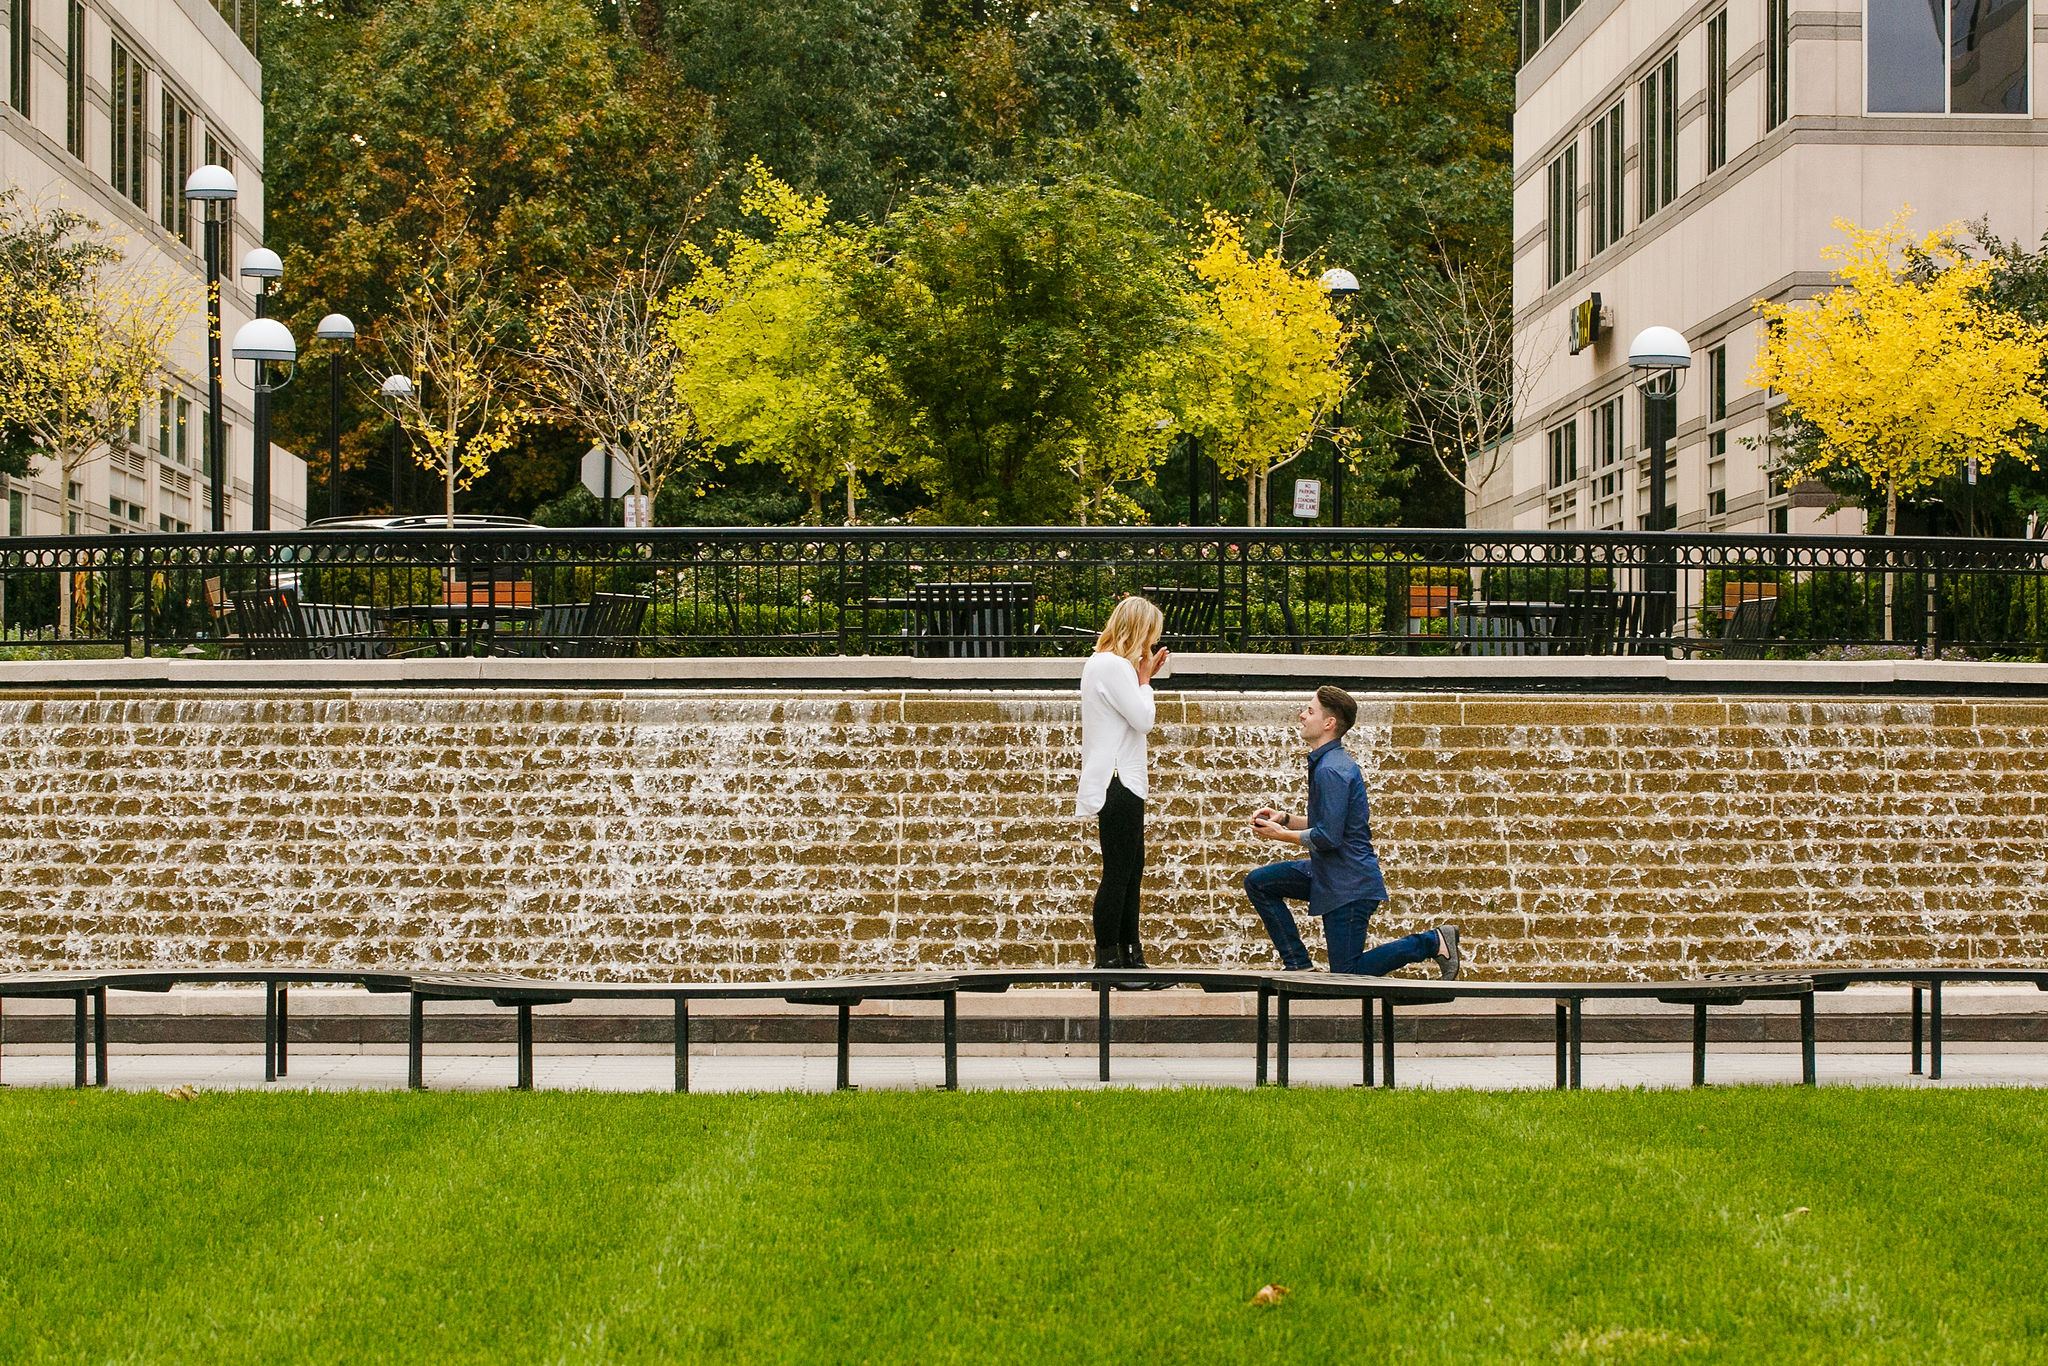 Steven-and-Kaitlyn-Reston-Surprise-Proposal-www.jonflemingphotography.com(5of165).jpg